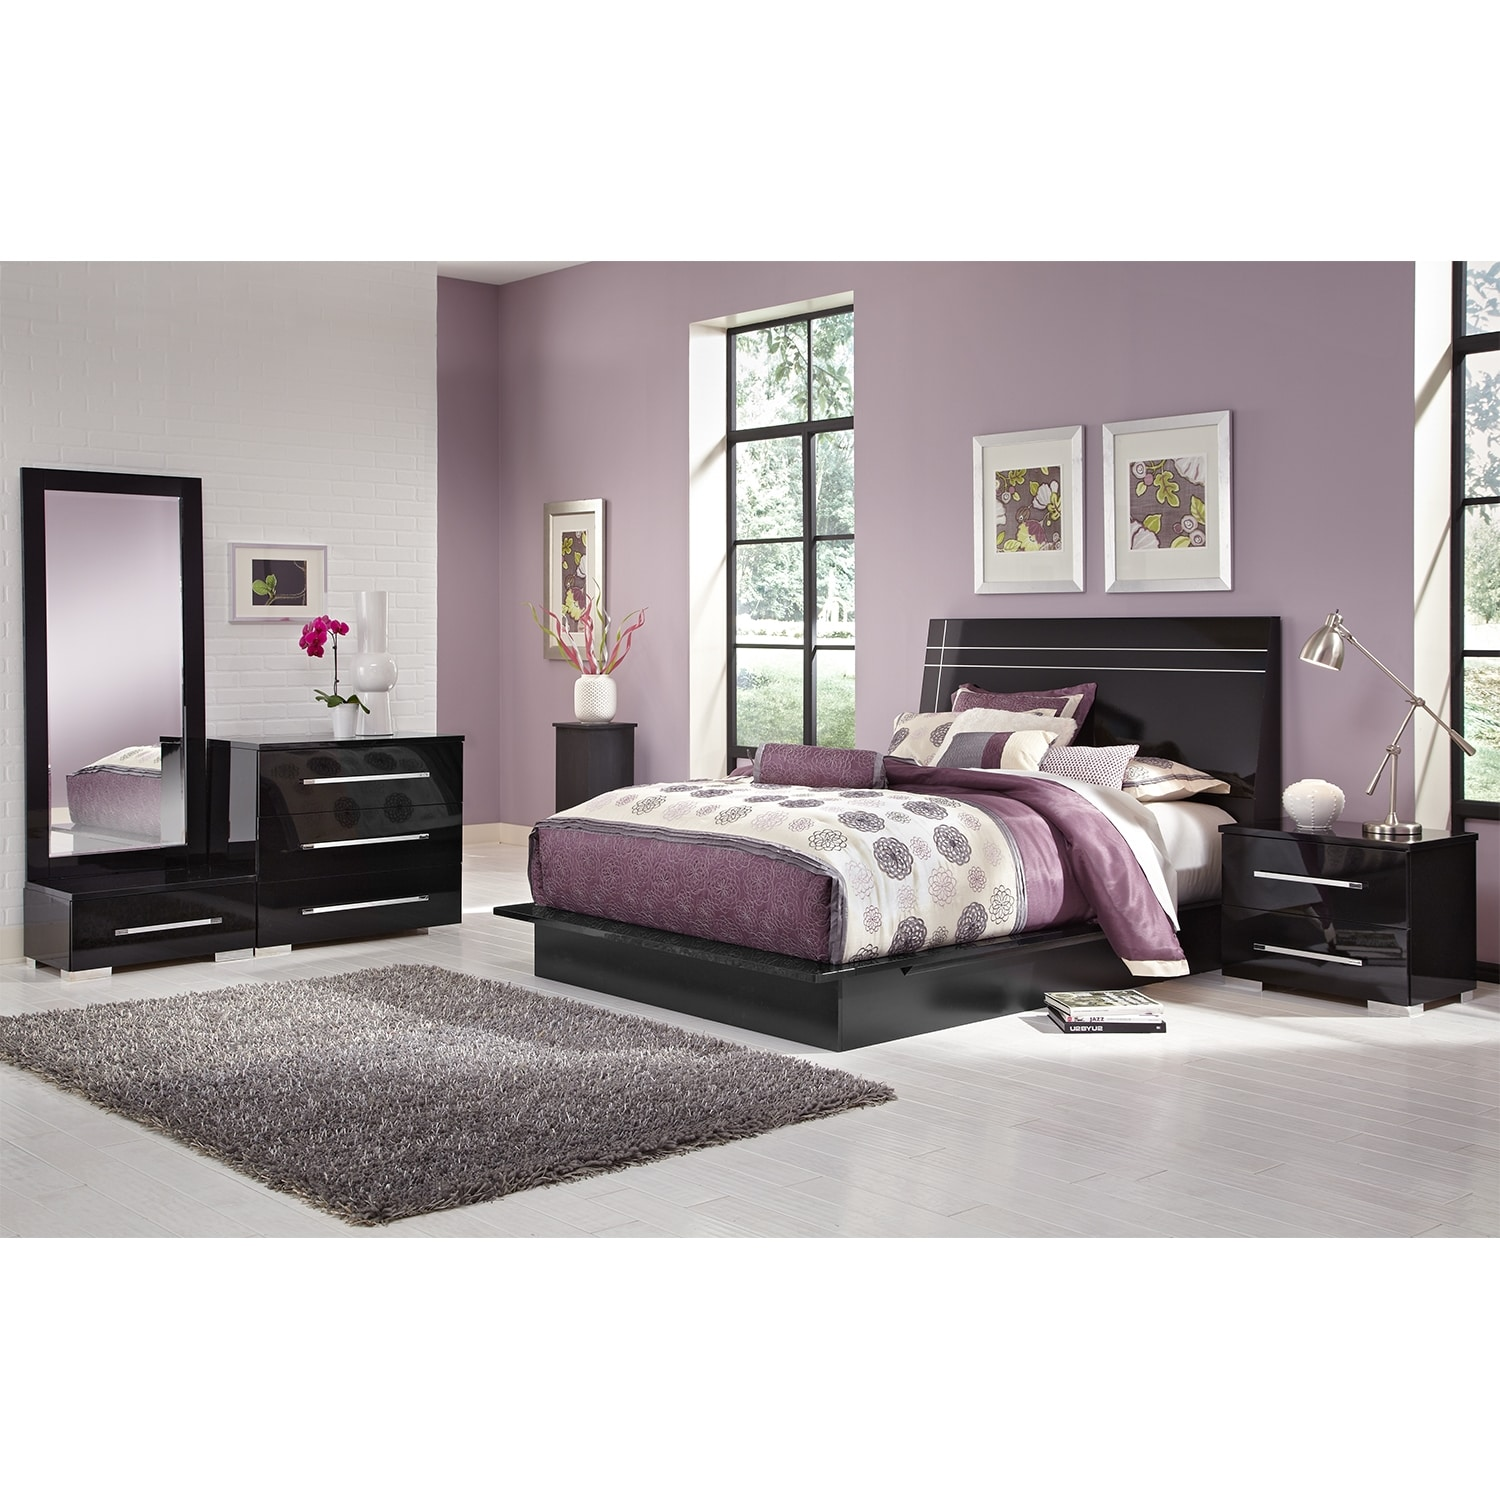 Bedroom Furniture - Dimora 6-Piece King Panel Bedroom Set - Black